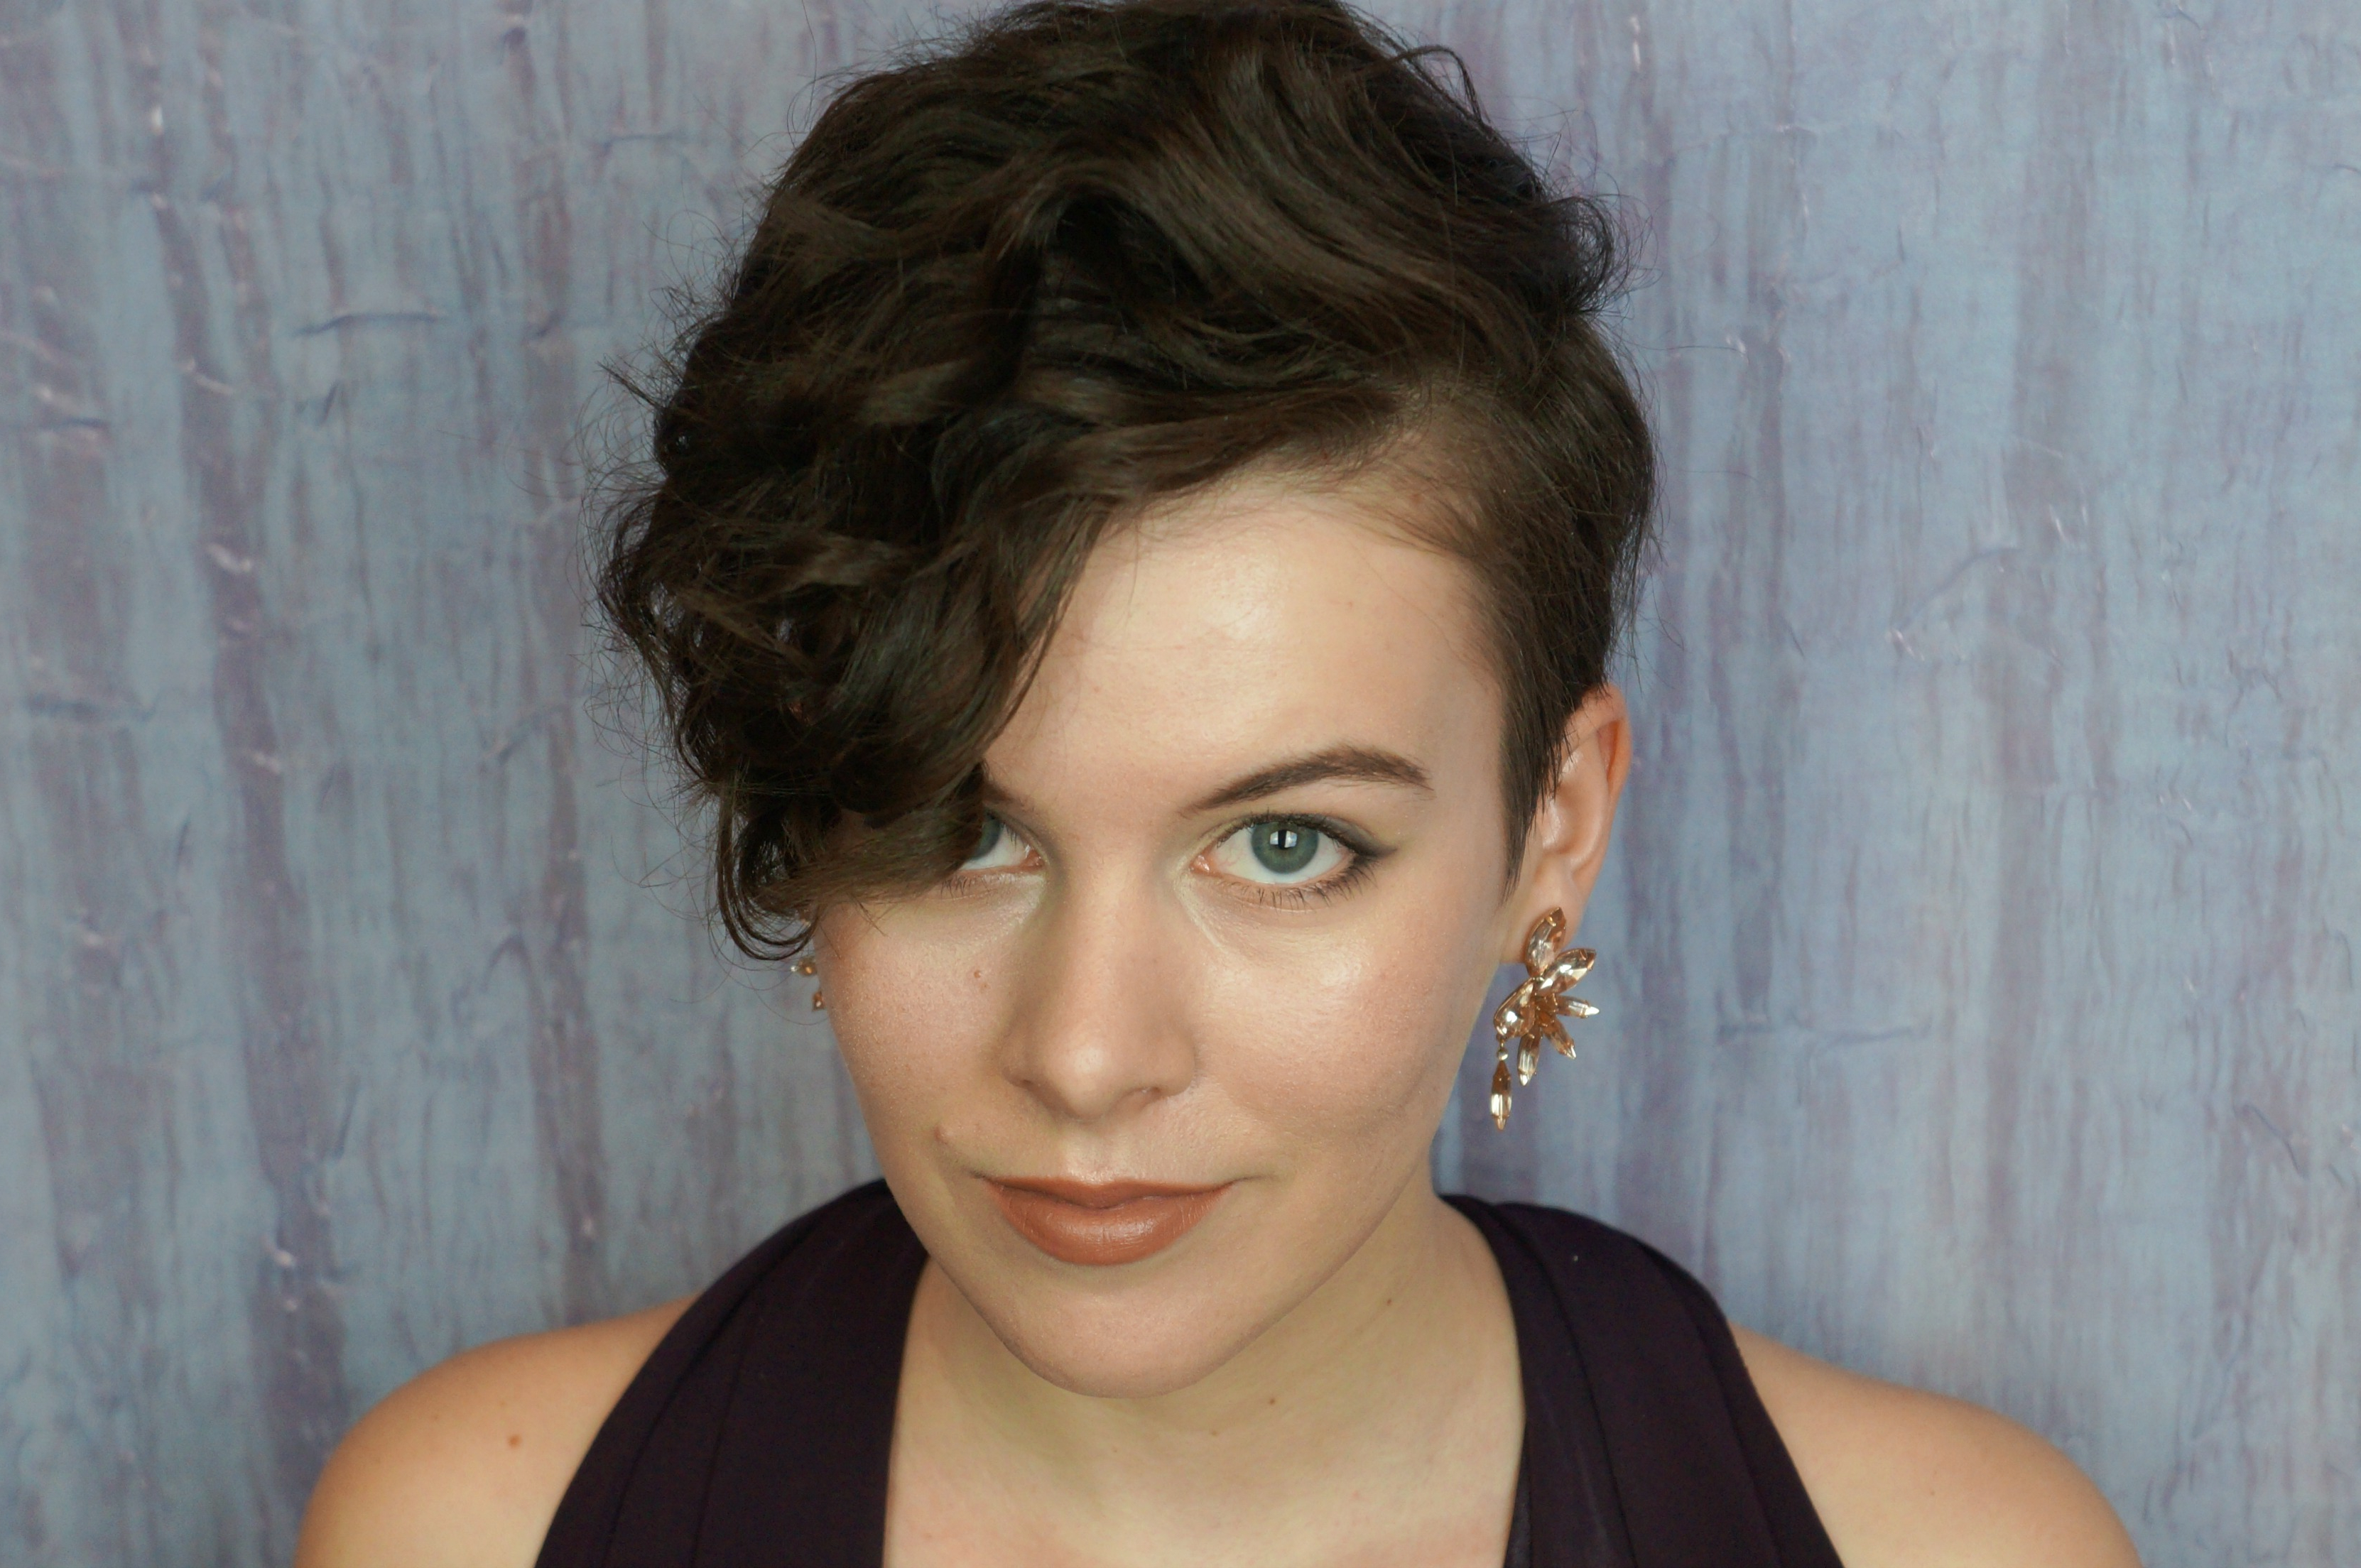 4 Short Hairstyles For Prom That Prove Pixie Cuts Can Be Extremely Glam Throughout Short Hairstyles For Formal Event (View 3 of 25)